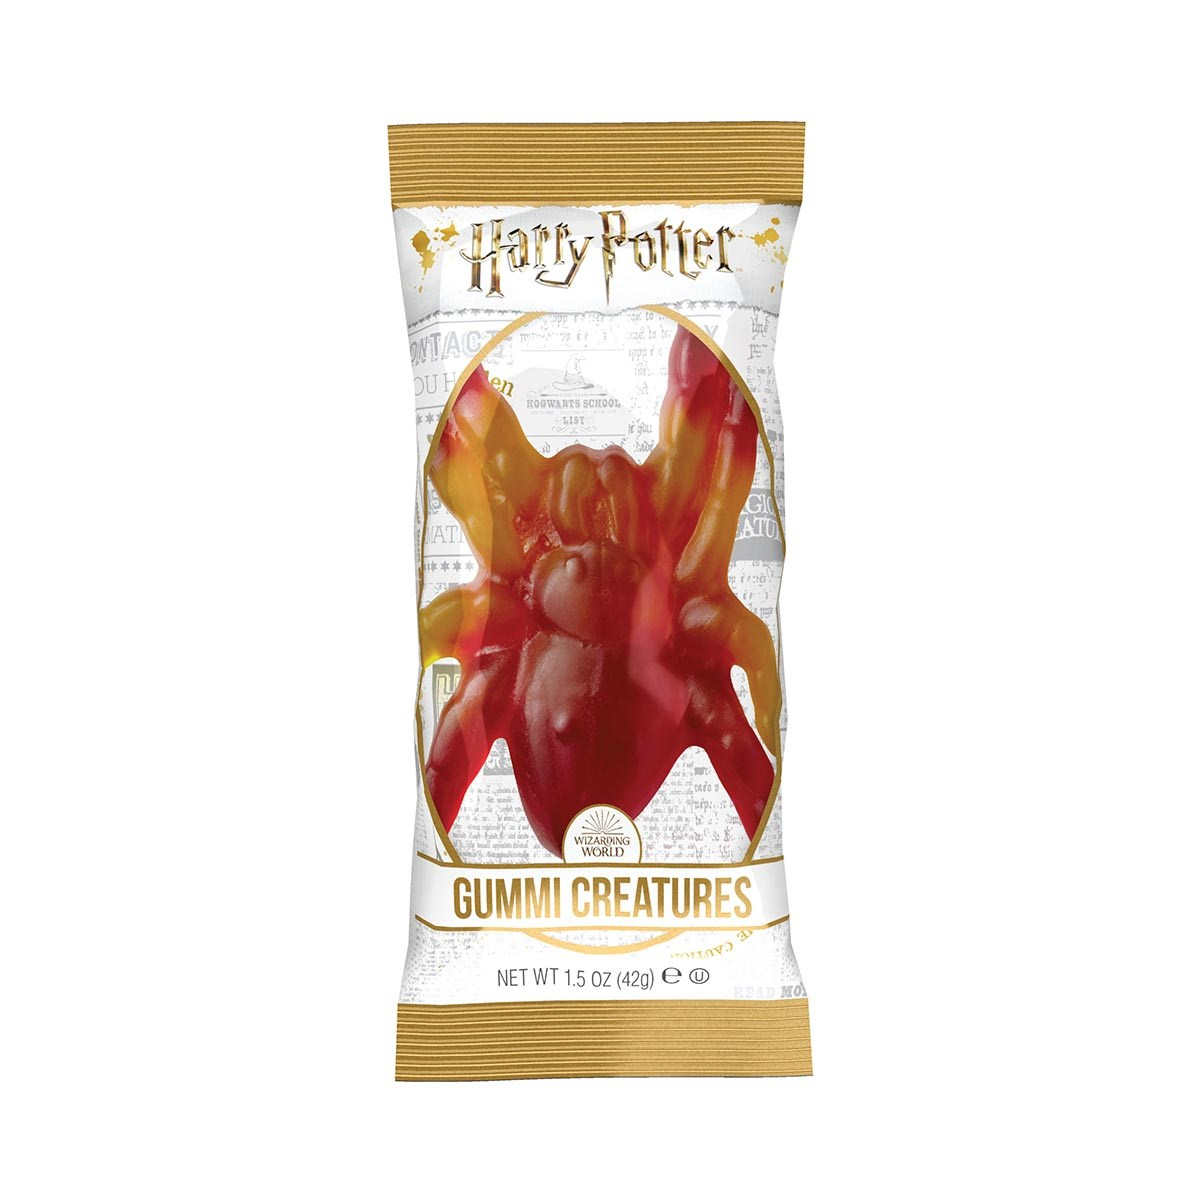 (G) HARRY POTTER GUMMI CREATURES 1.5 OZ 48 CT